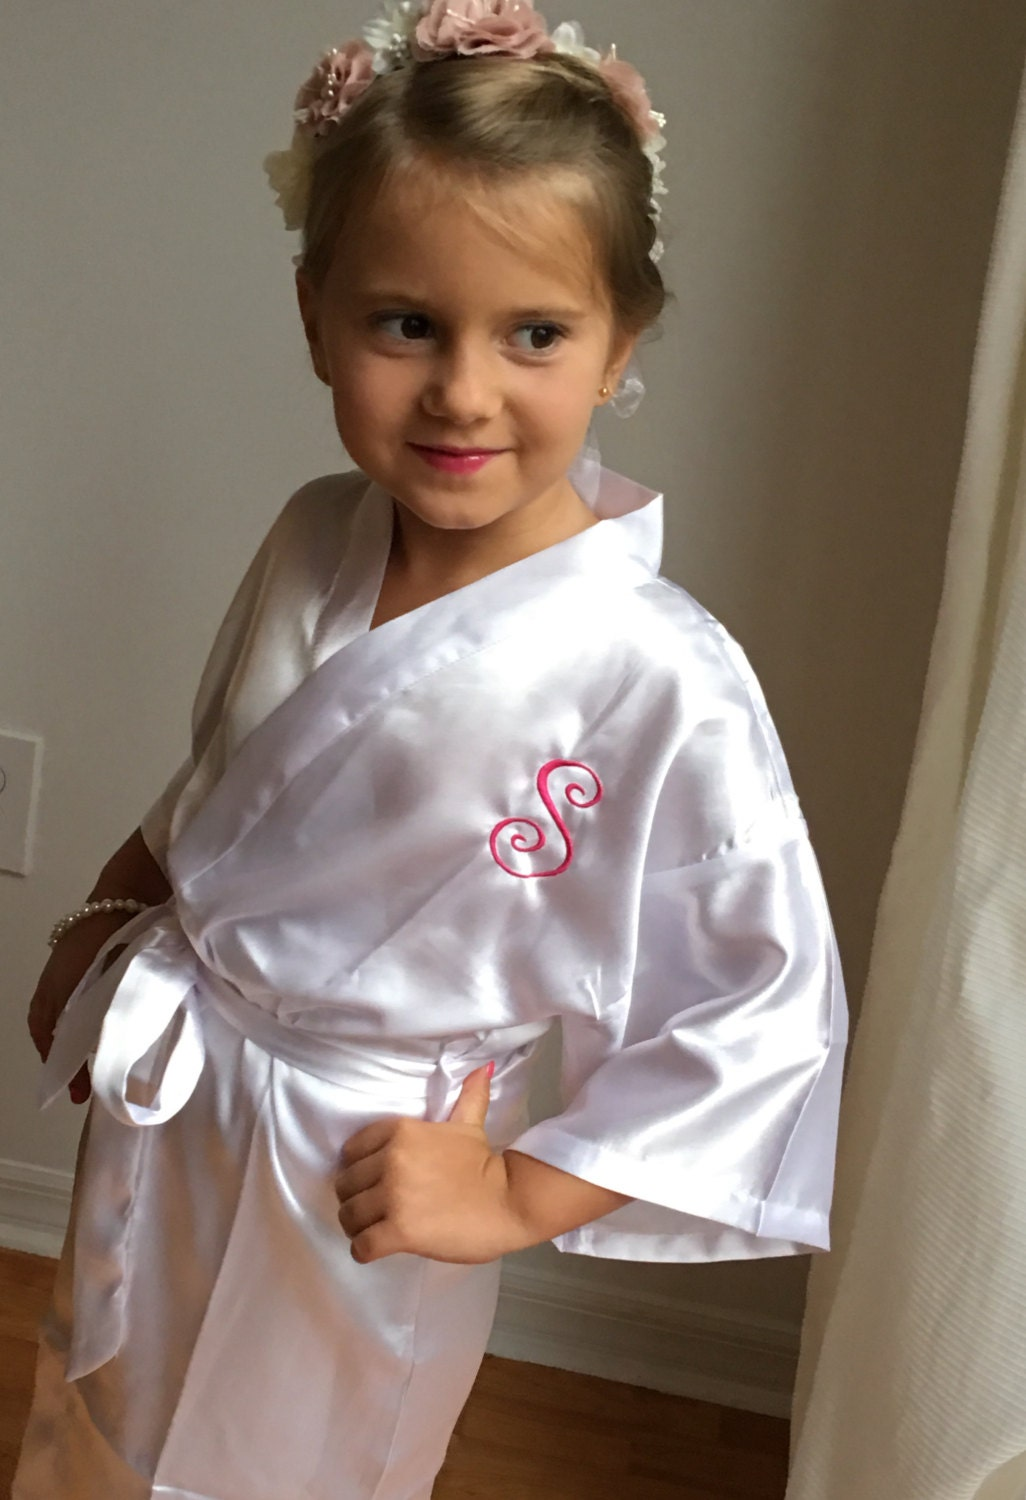 c46261d5a ... Bridal Party Robes, Children Satin Robes. gallery photo gallery photo  ...